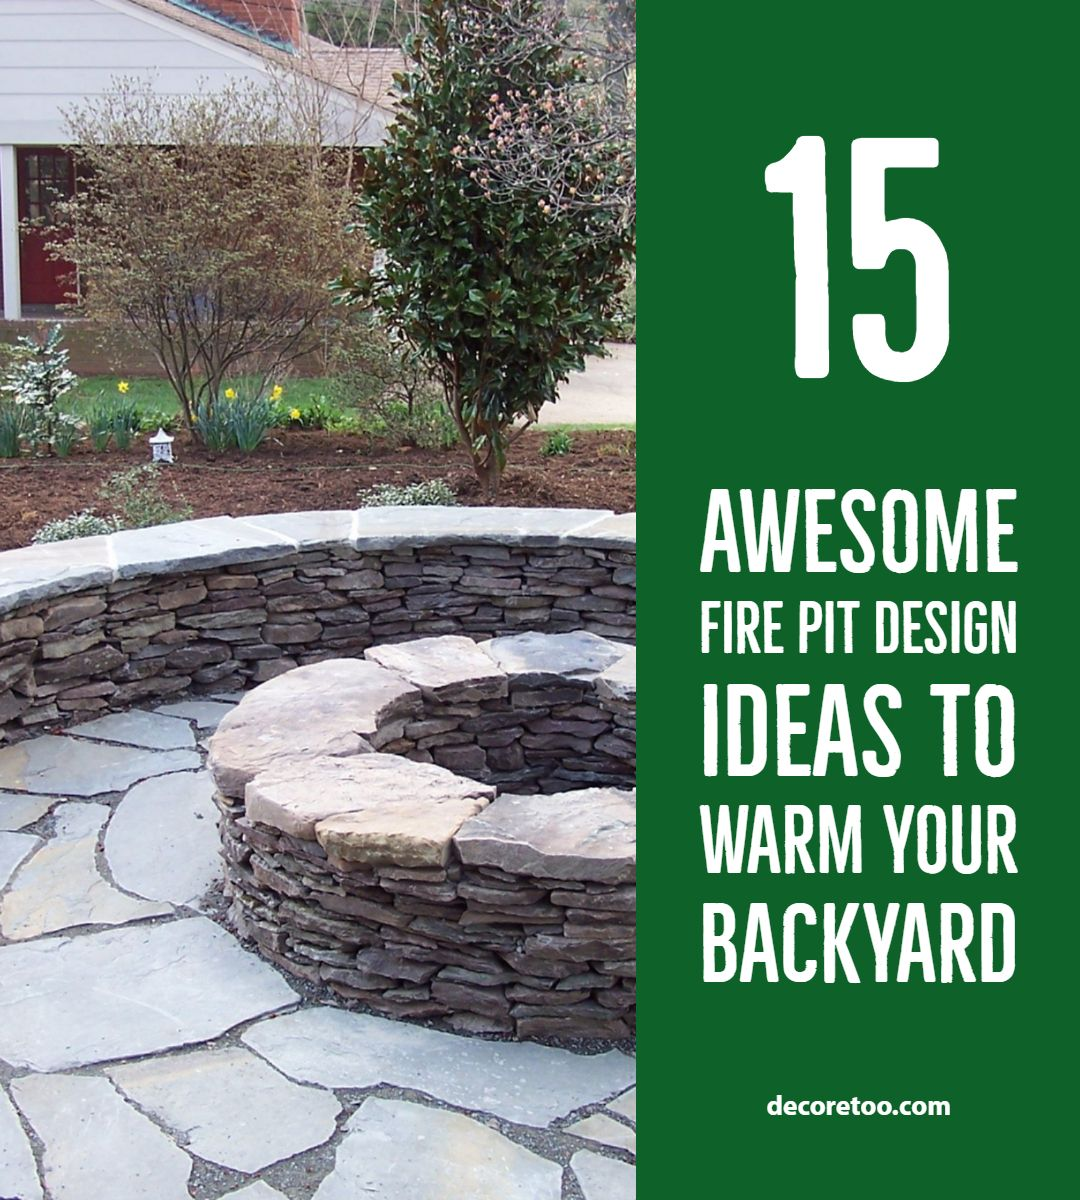 Photo of 15 Awesome Fire Pit Design Ideas to Warm Your Backyard 1